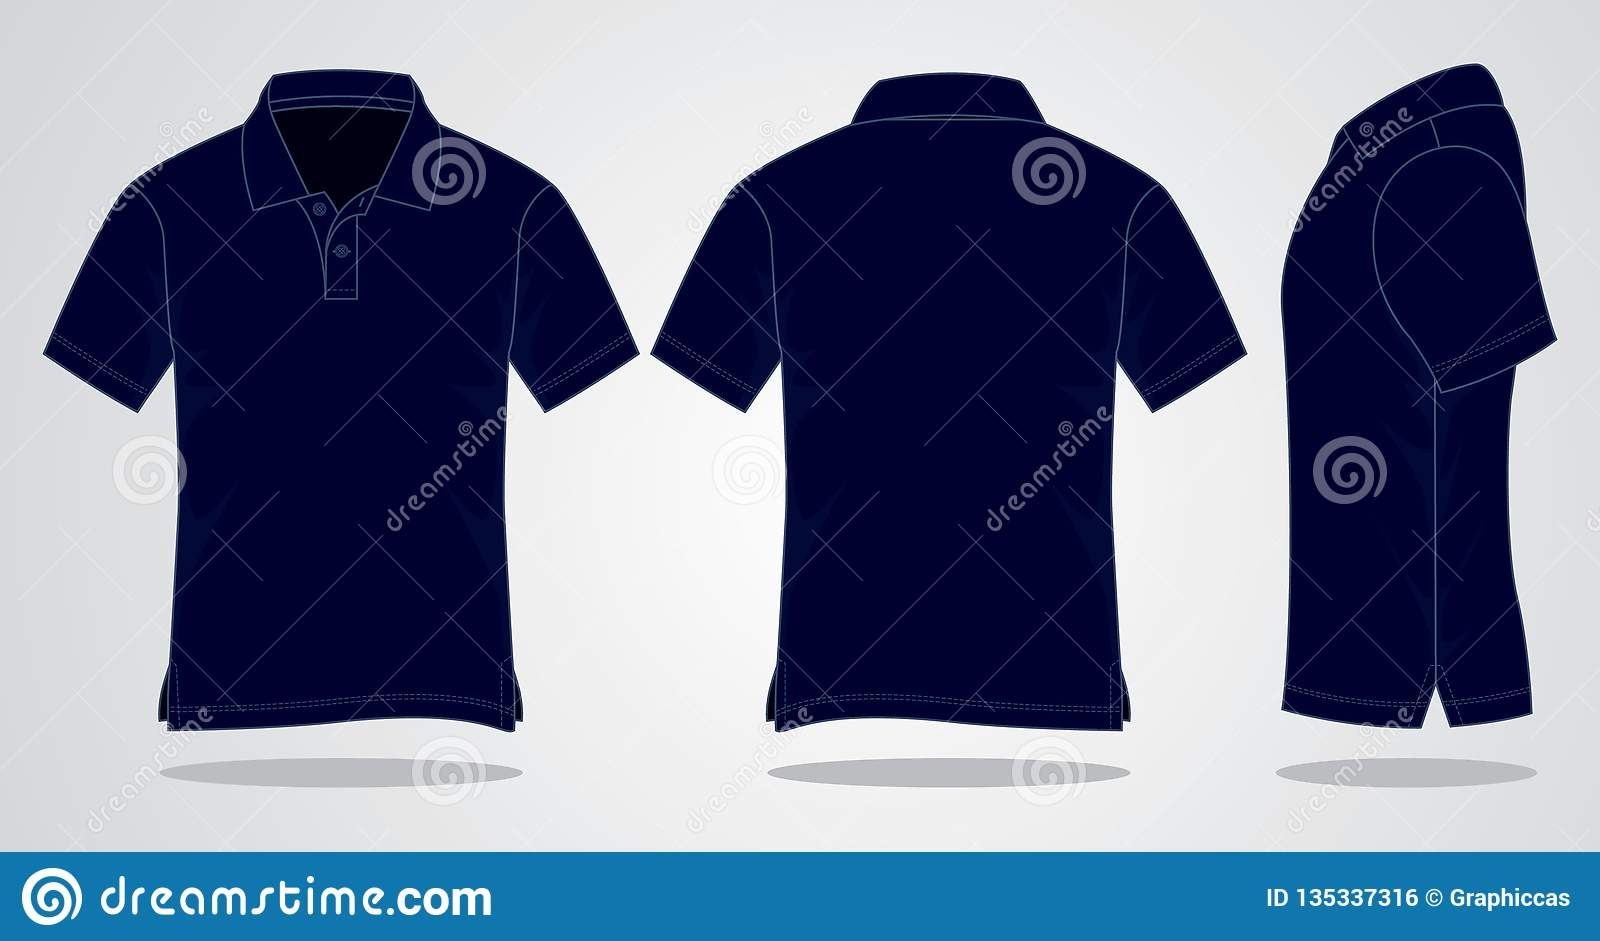 6b82c4a1ad01 Navy Blue Polo Shirt Vecor For Template Stock Illustration ...